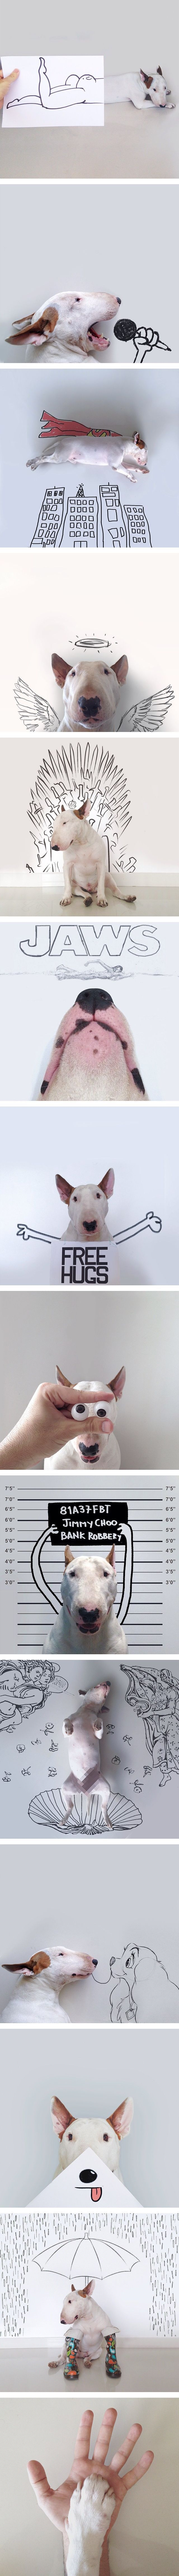 Dog Owner Creates Funny Illustrations With His Bull Terrier And They Are Awesome